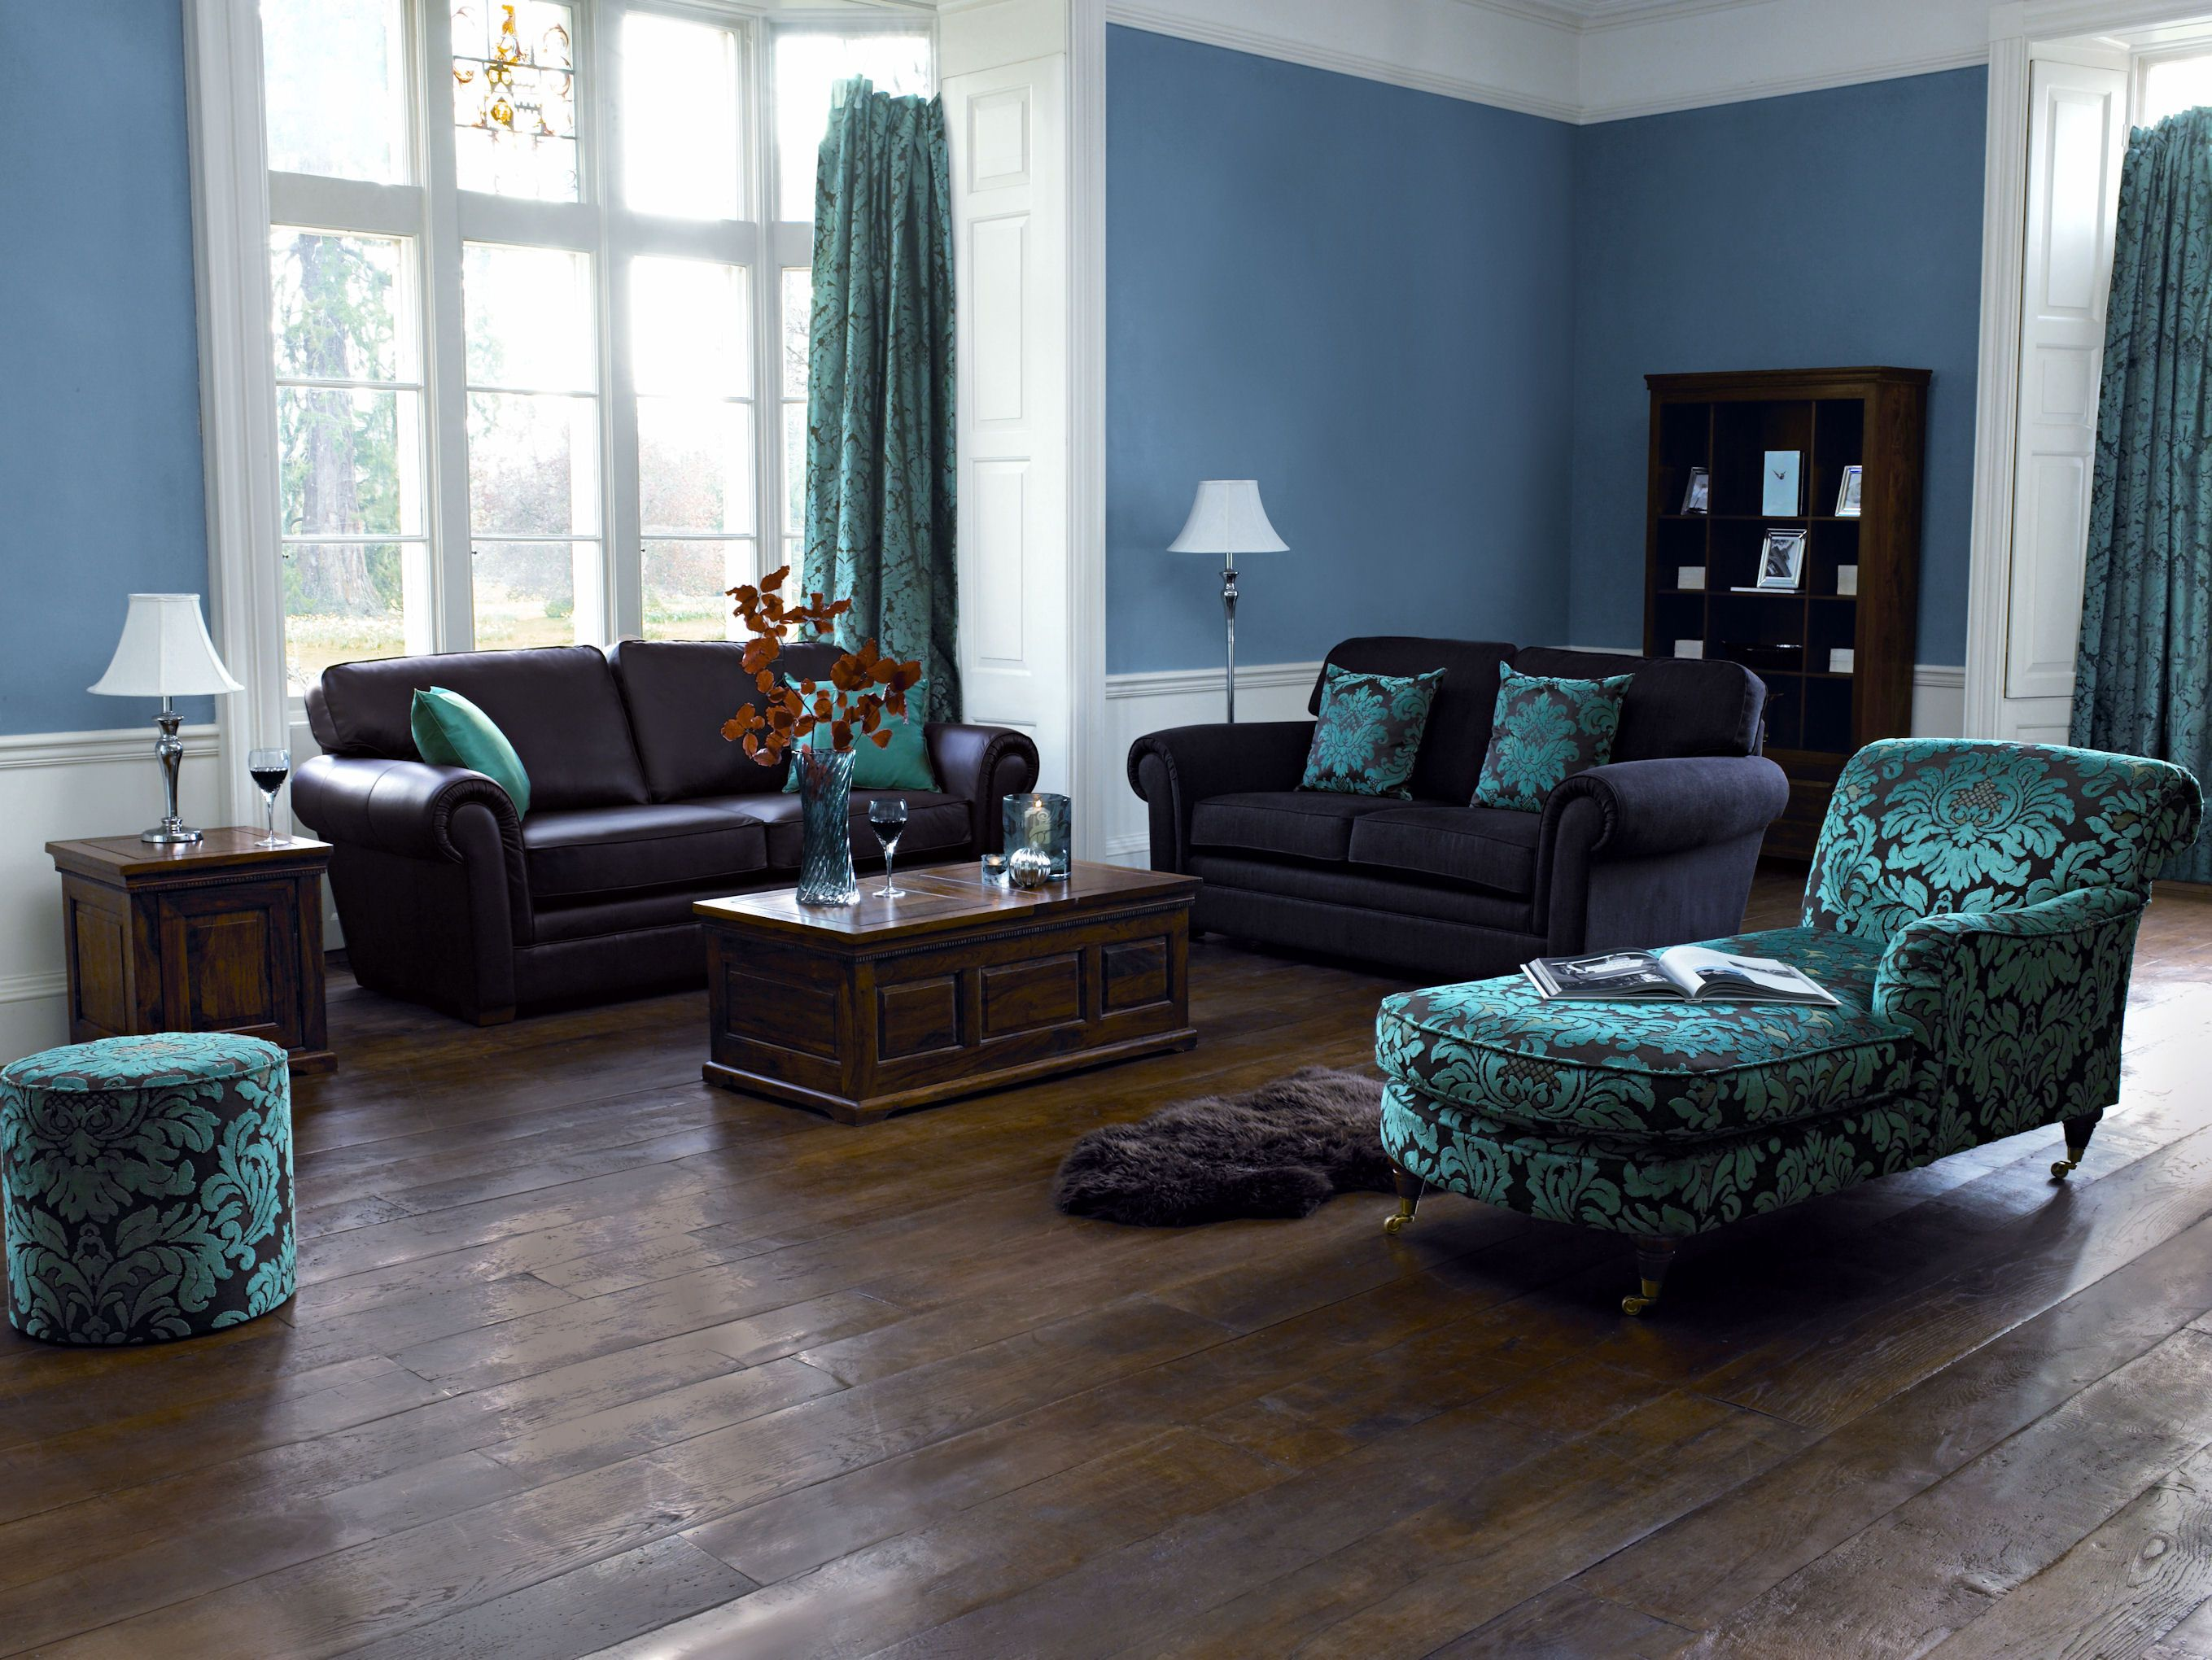 Blue Paint Color Ideas For Living Room With Dark Furniture And Hardwood Floors